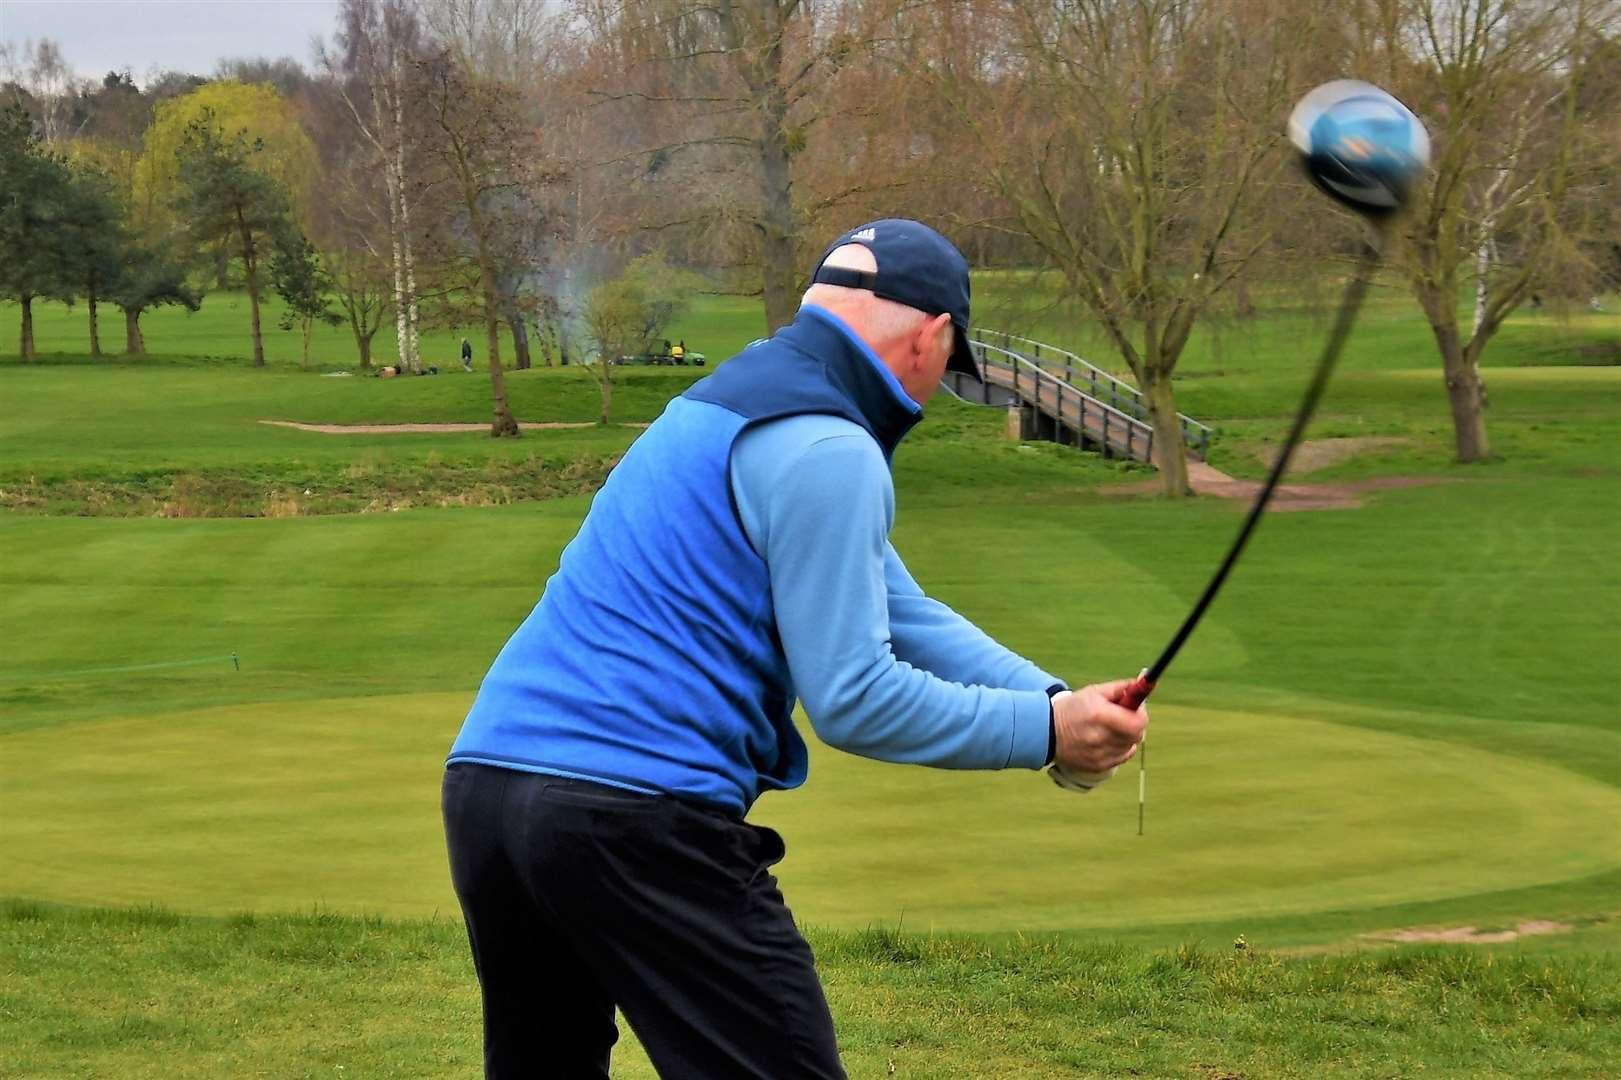 The region's golf clubs are preparing to reopen under the new restricted guidance laid out by England GolfPicture: Chris Boughton